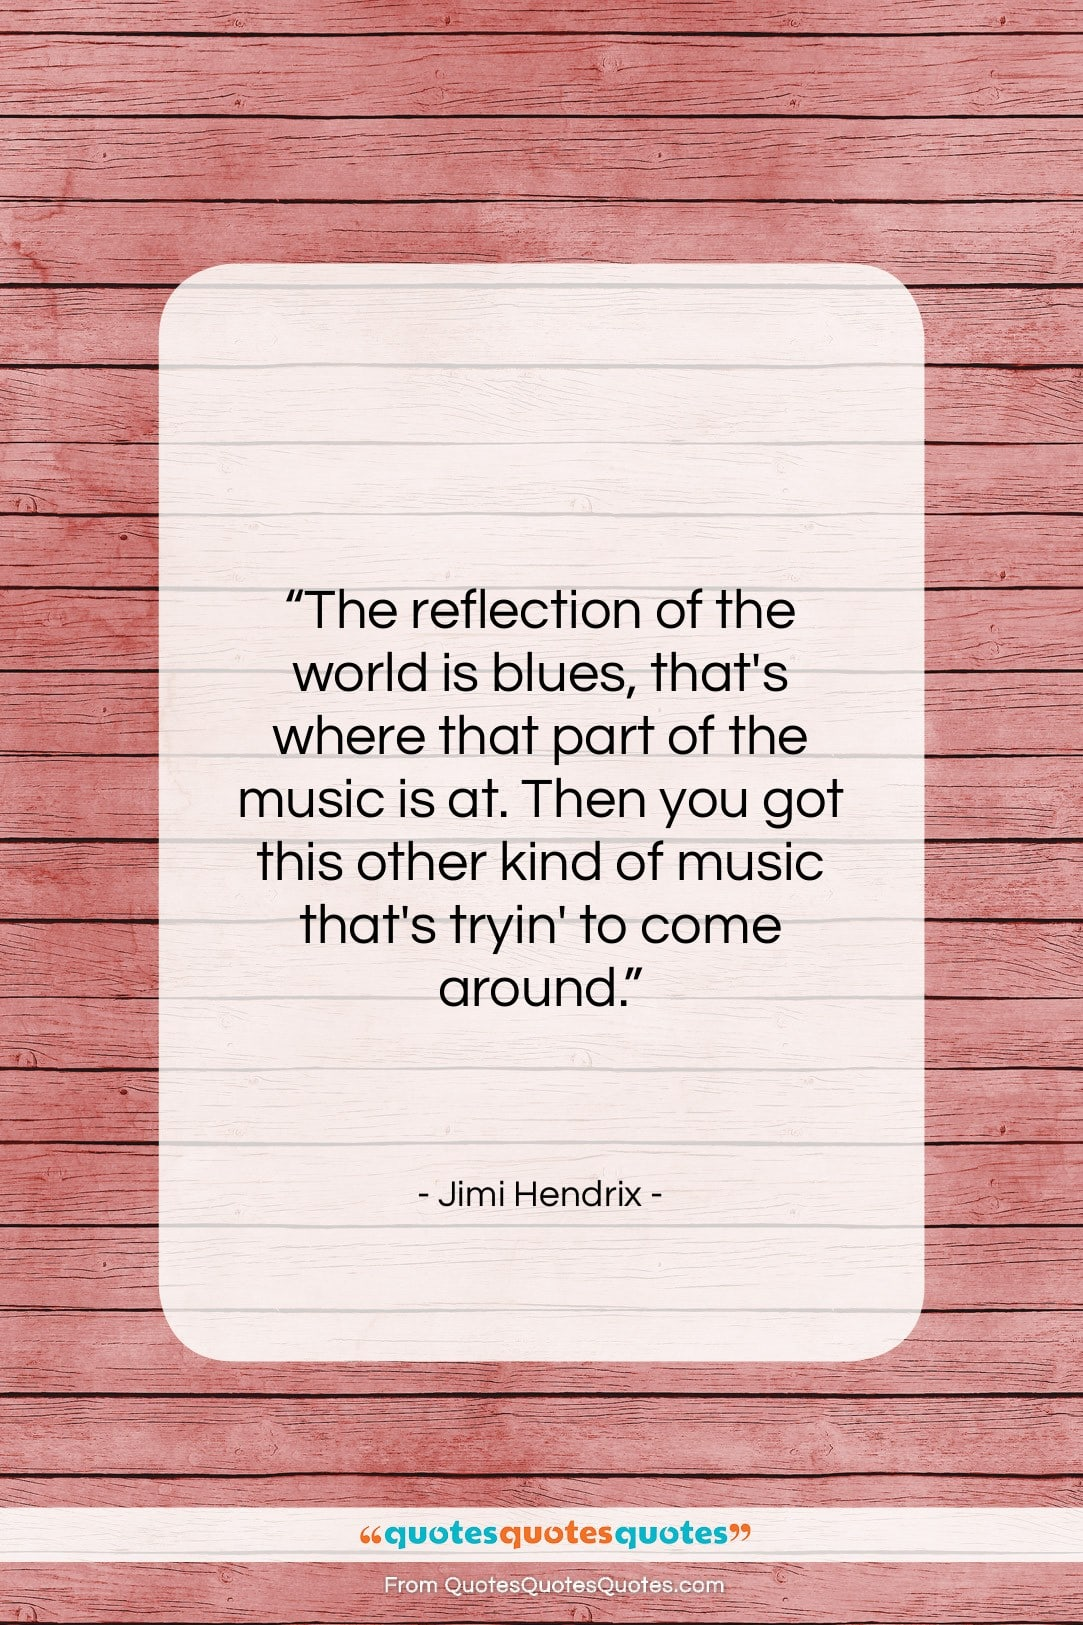 """Jimi Hendrix quote: """"The reflection of the world is blues,…""""- at QuotesQuotesQuotes.com"""